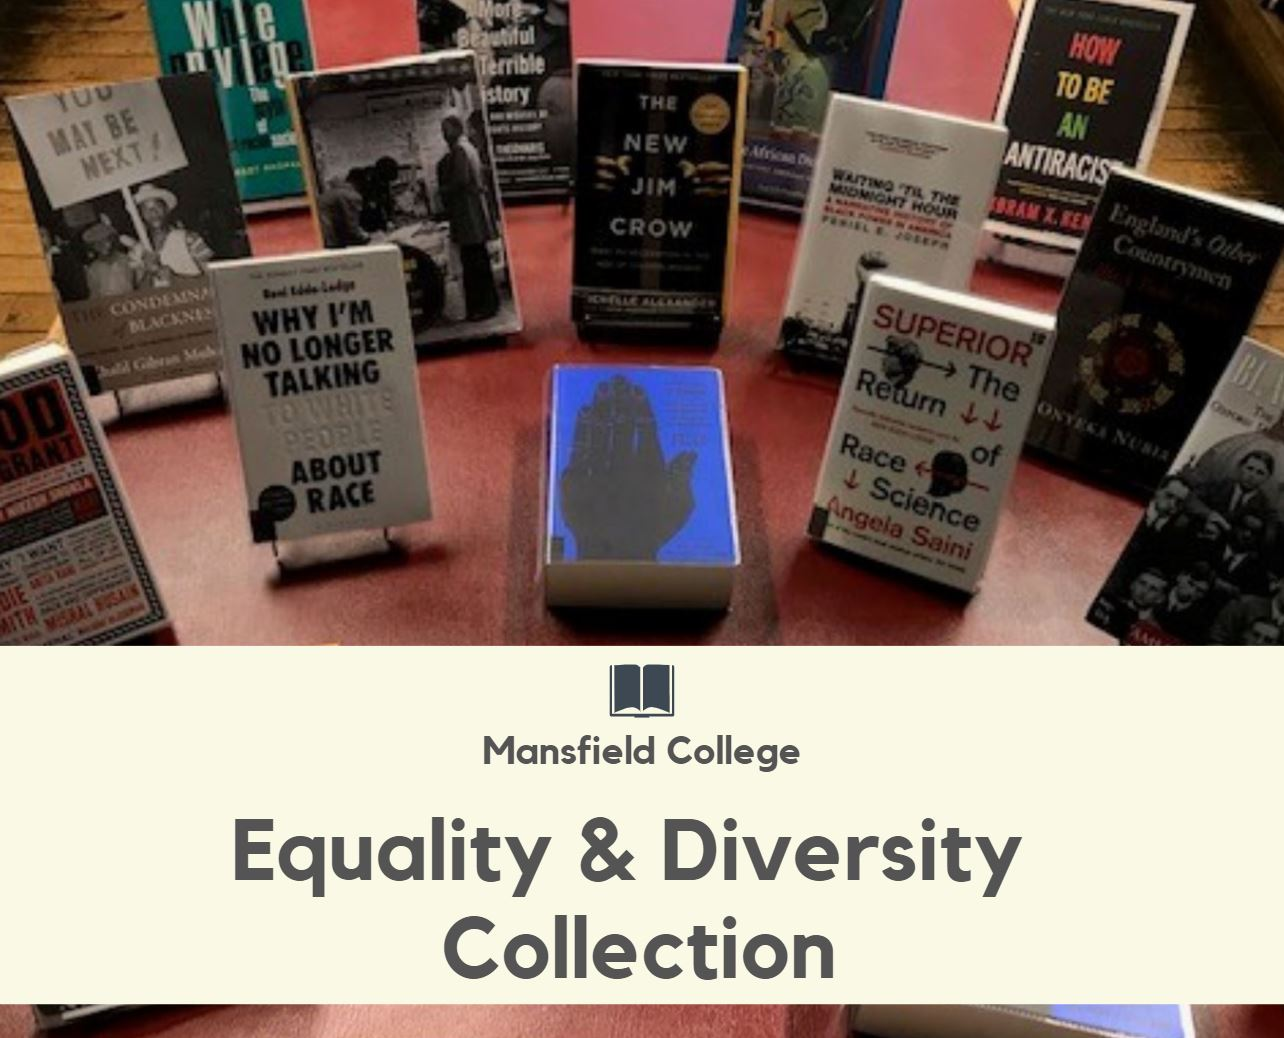 Equality & Diversity Collection